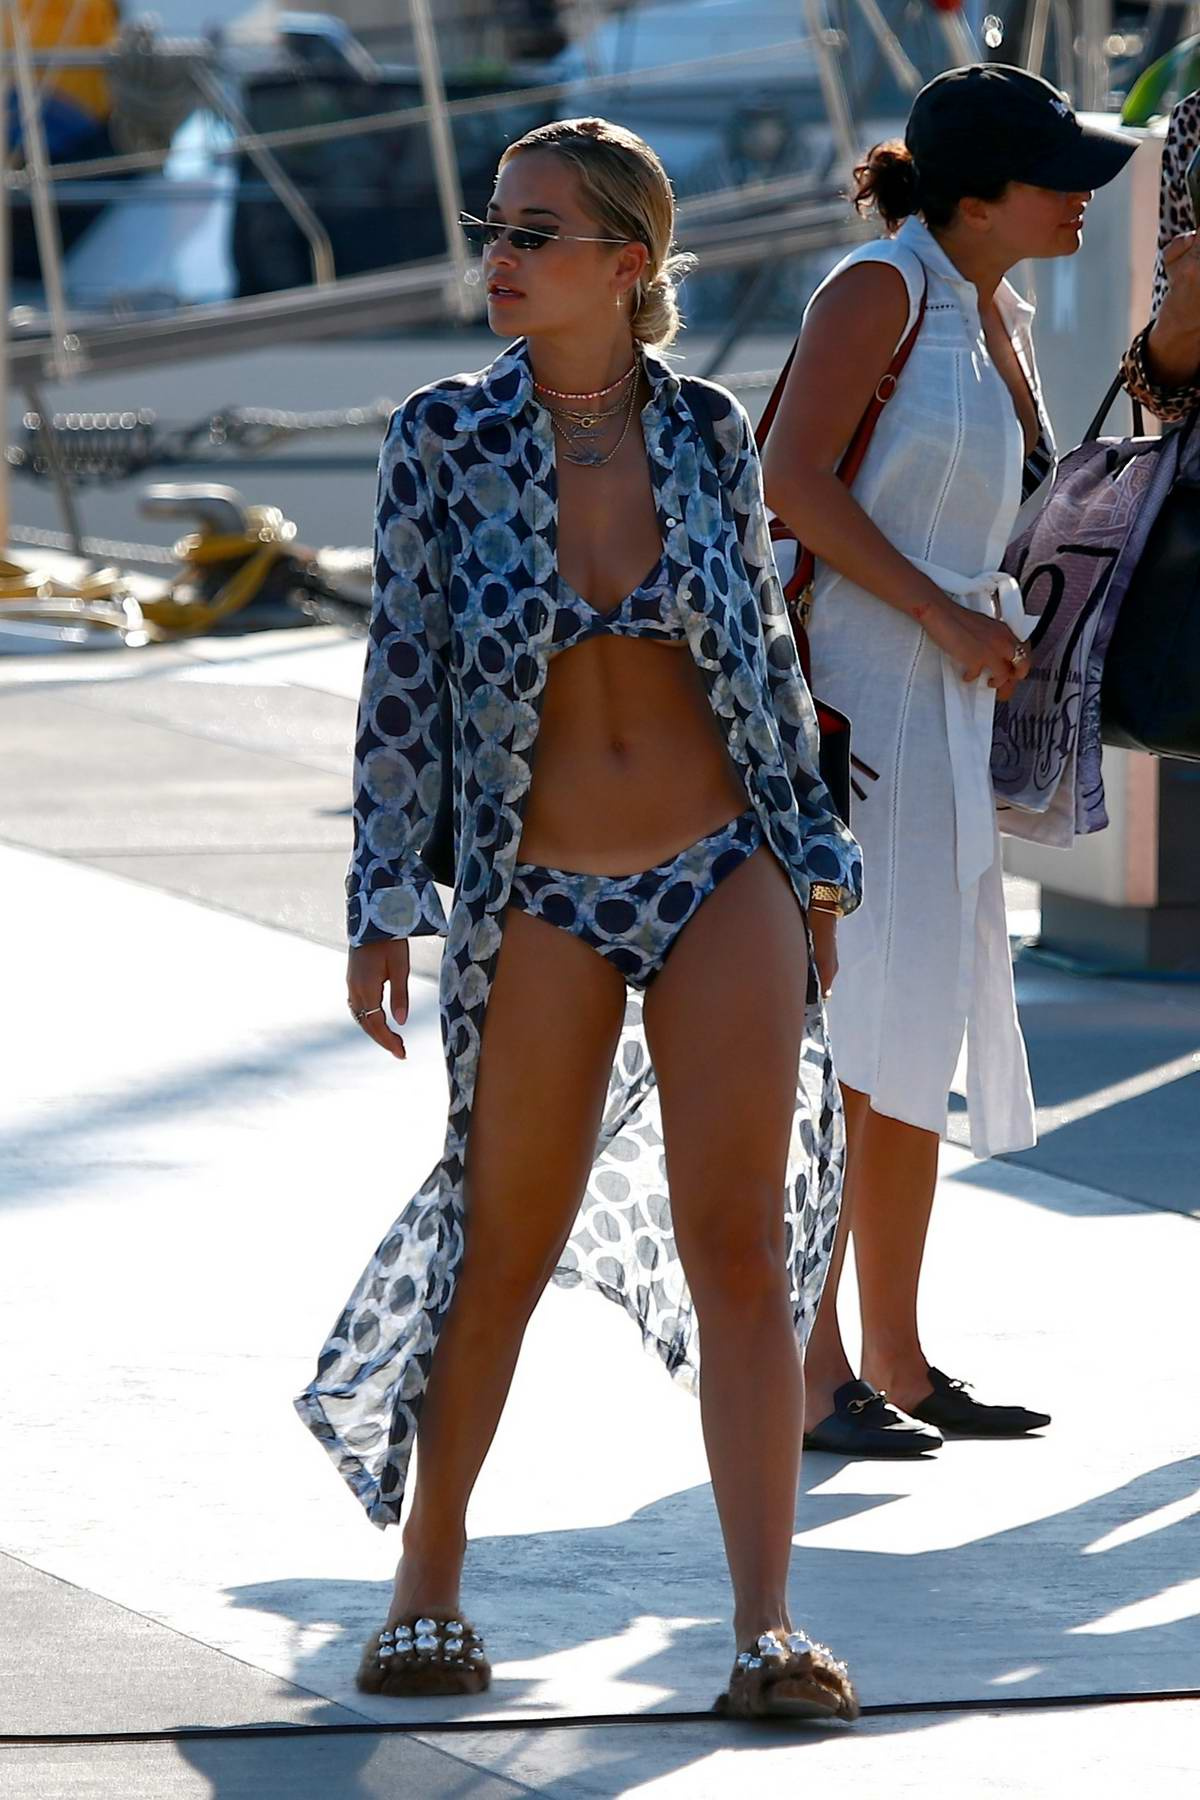 Rita Ora spotted in a patterned bikini as she returns after a boat ride with her friends in Barcelona, Spain